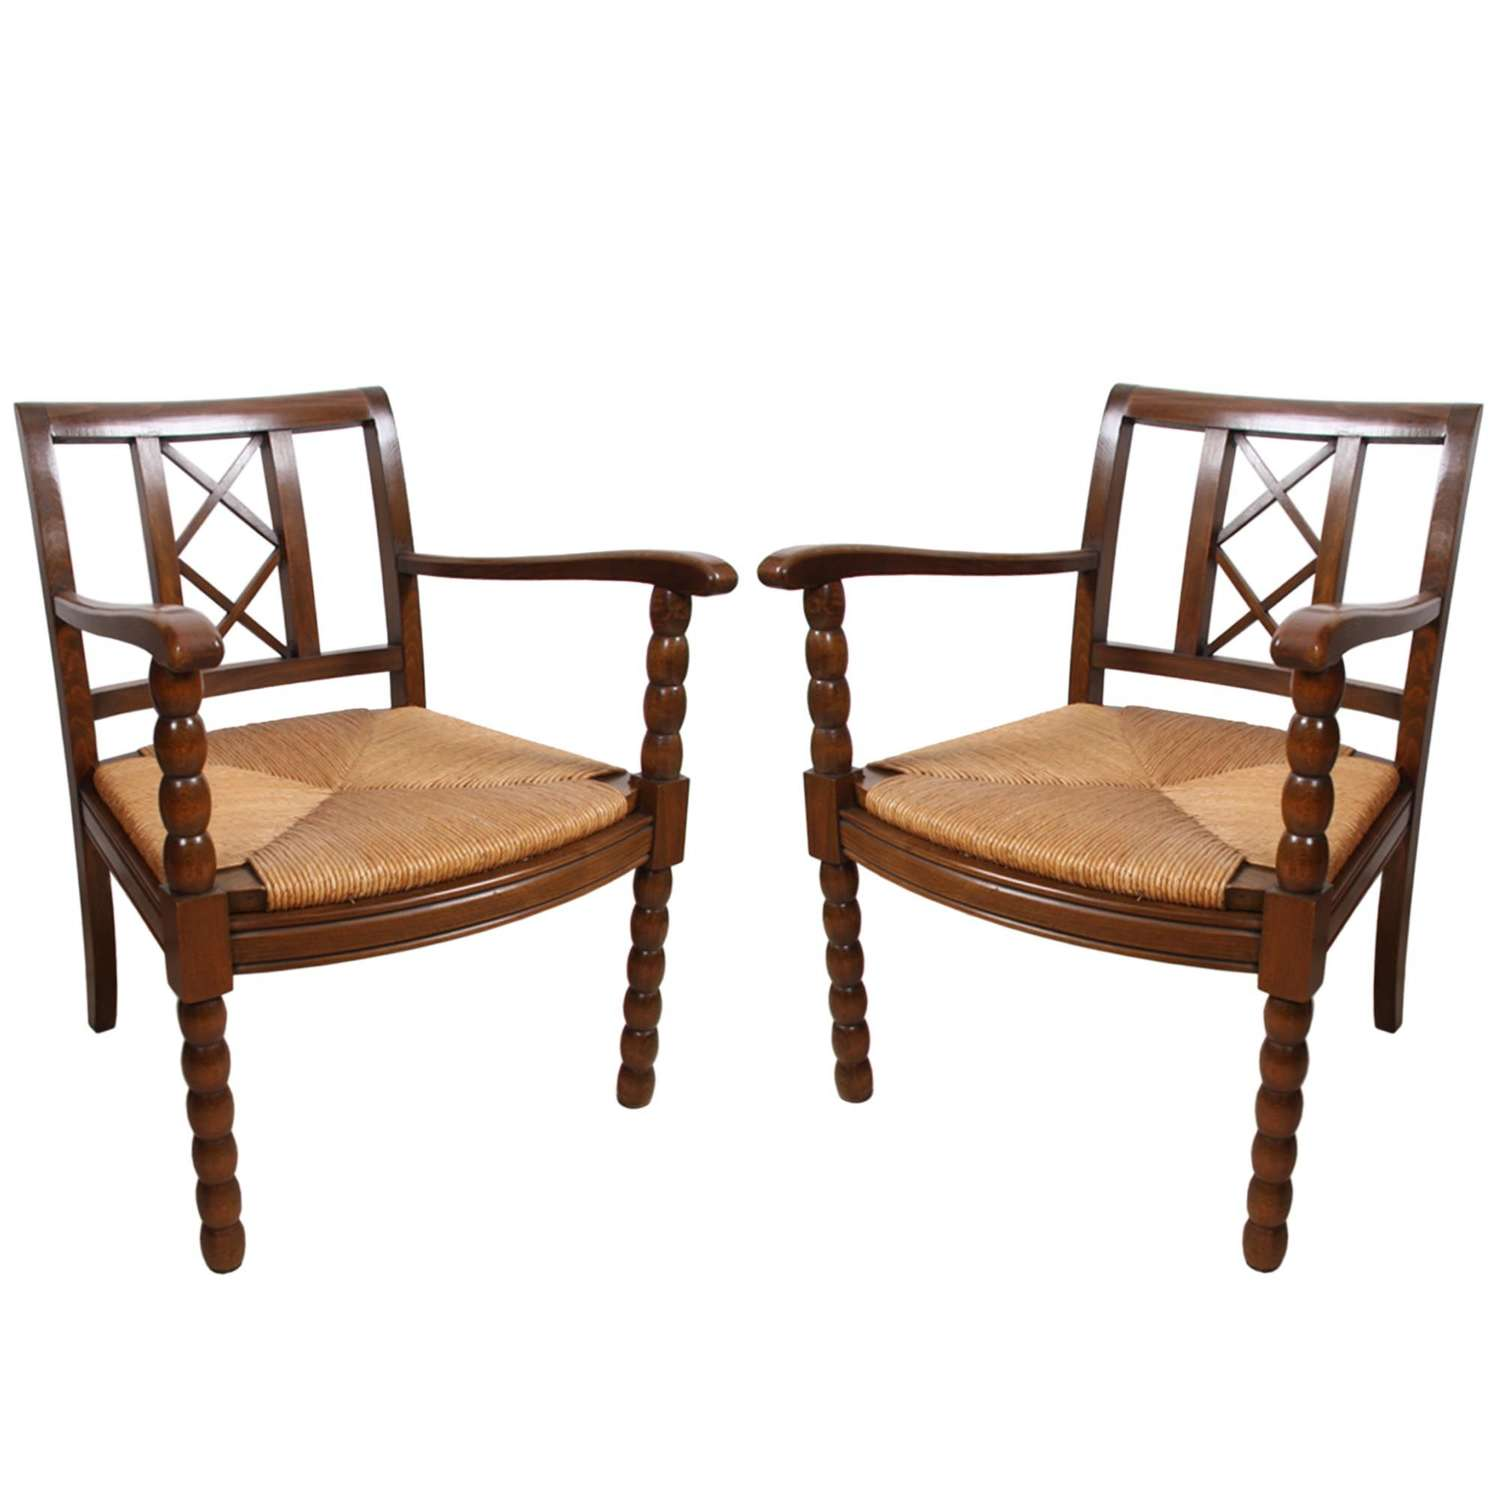 Pair of French 1940s Walnut and Rush Chairs